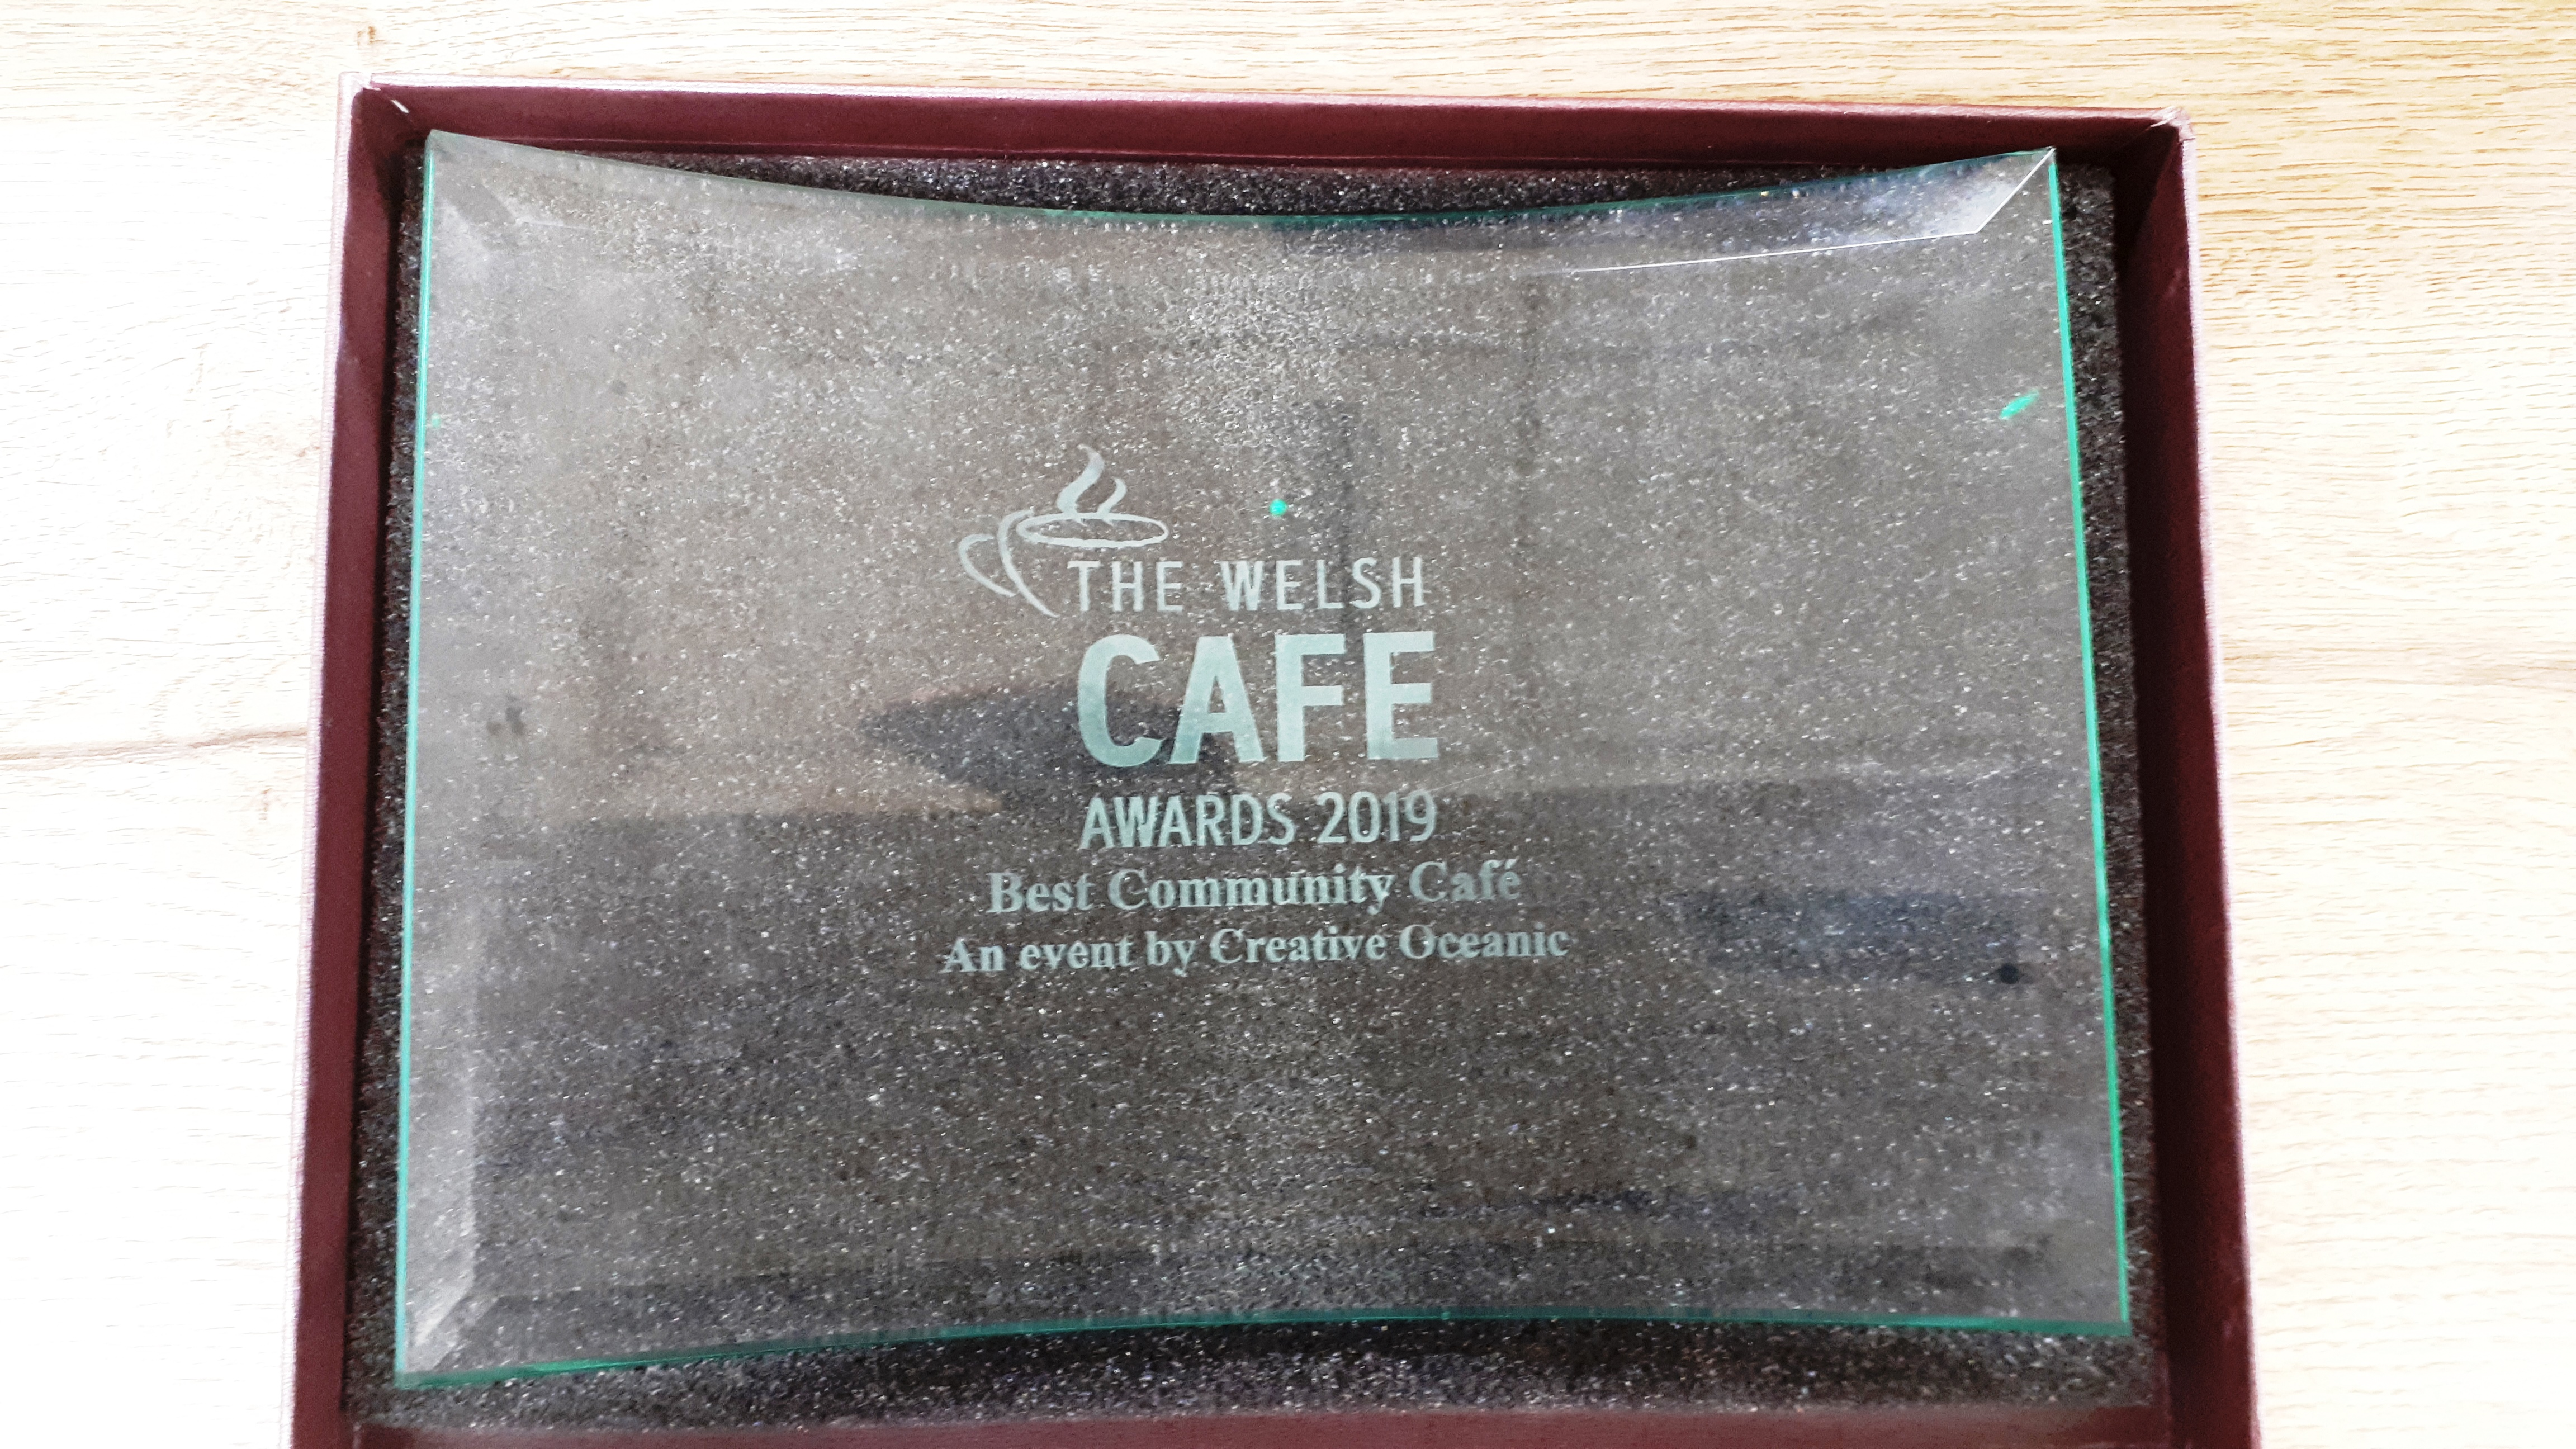 Welsh Cafe Award trophy